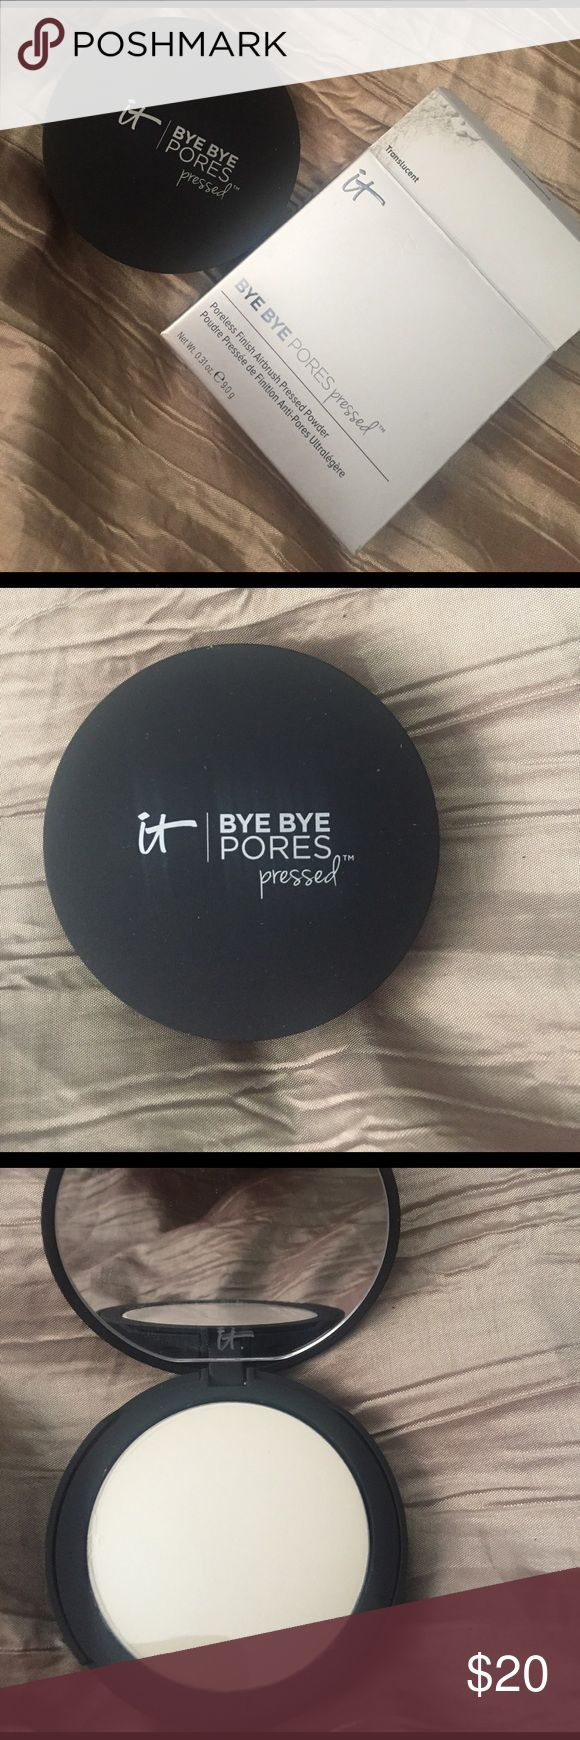 IT Cosmetics Bye Bye Pores Pressed Powder IT Cosmetics best selling Translucent Powder. Helps erase the look of pores and fine lines. Good for all skin types. Pressed Powder that comes in a sleek compact with an included sponge. Contains silk, hydrolyzed collagen, antioxidents and peptides. Developed by plastic surgeons and dermatologists and is talc free, paraben free and cruelty free Sephora Makeup Face Powder